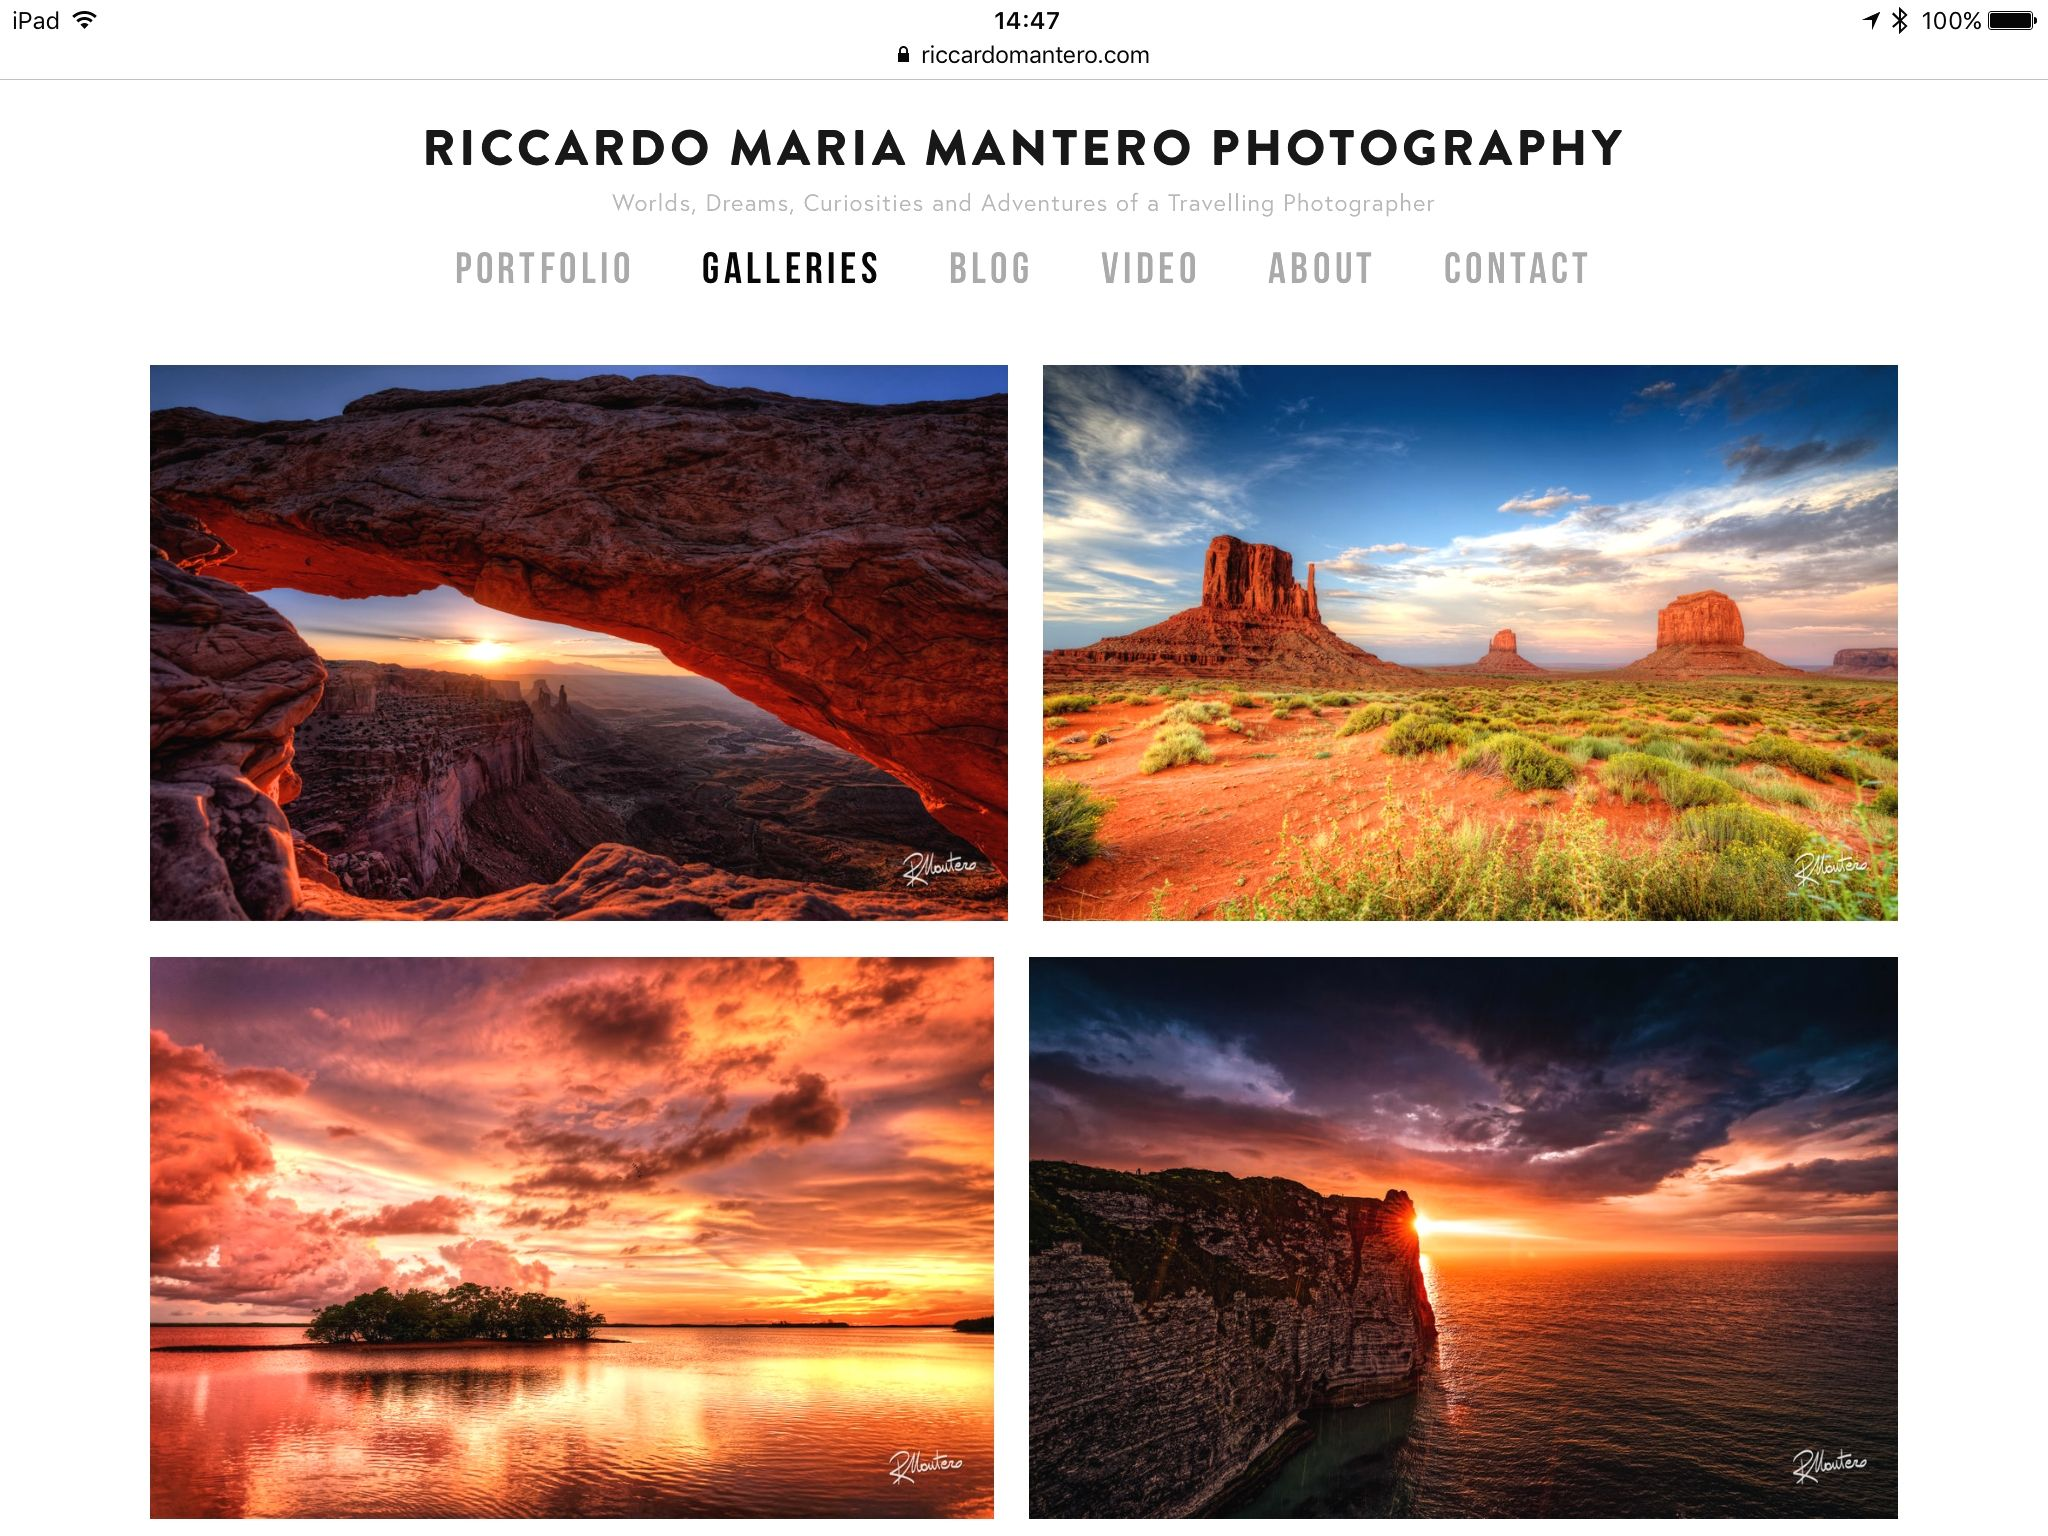 Visit Riccardo Maria Mantero Photography Page! Worlds, Dreams, Adventures of a Travels Photographer - http://bit.ly/twrmhome #photos